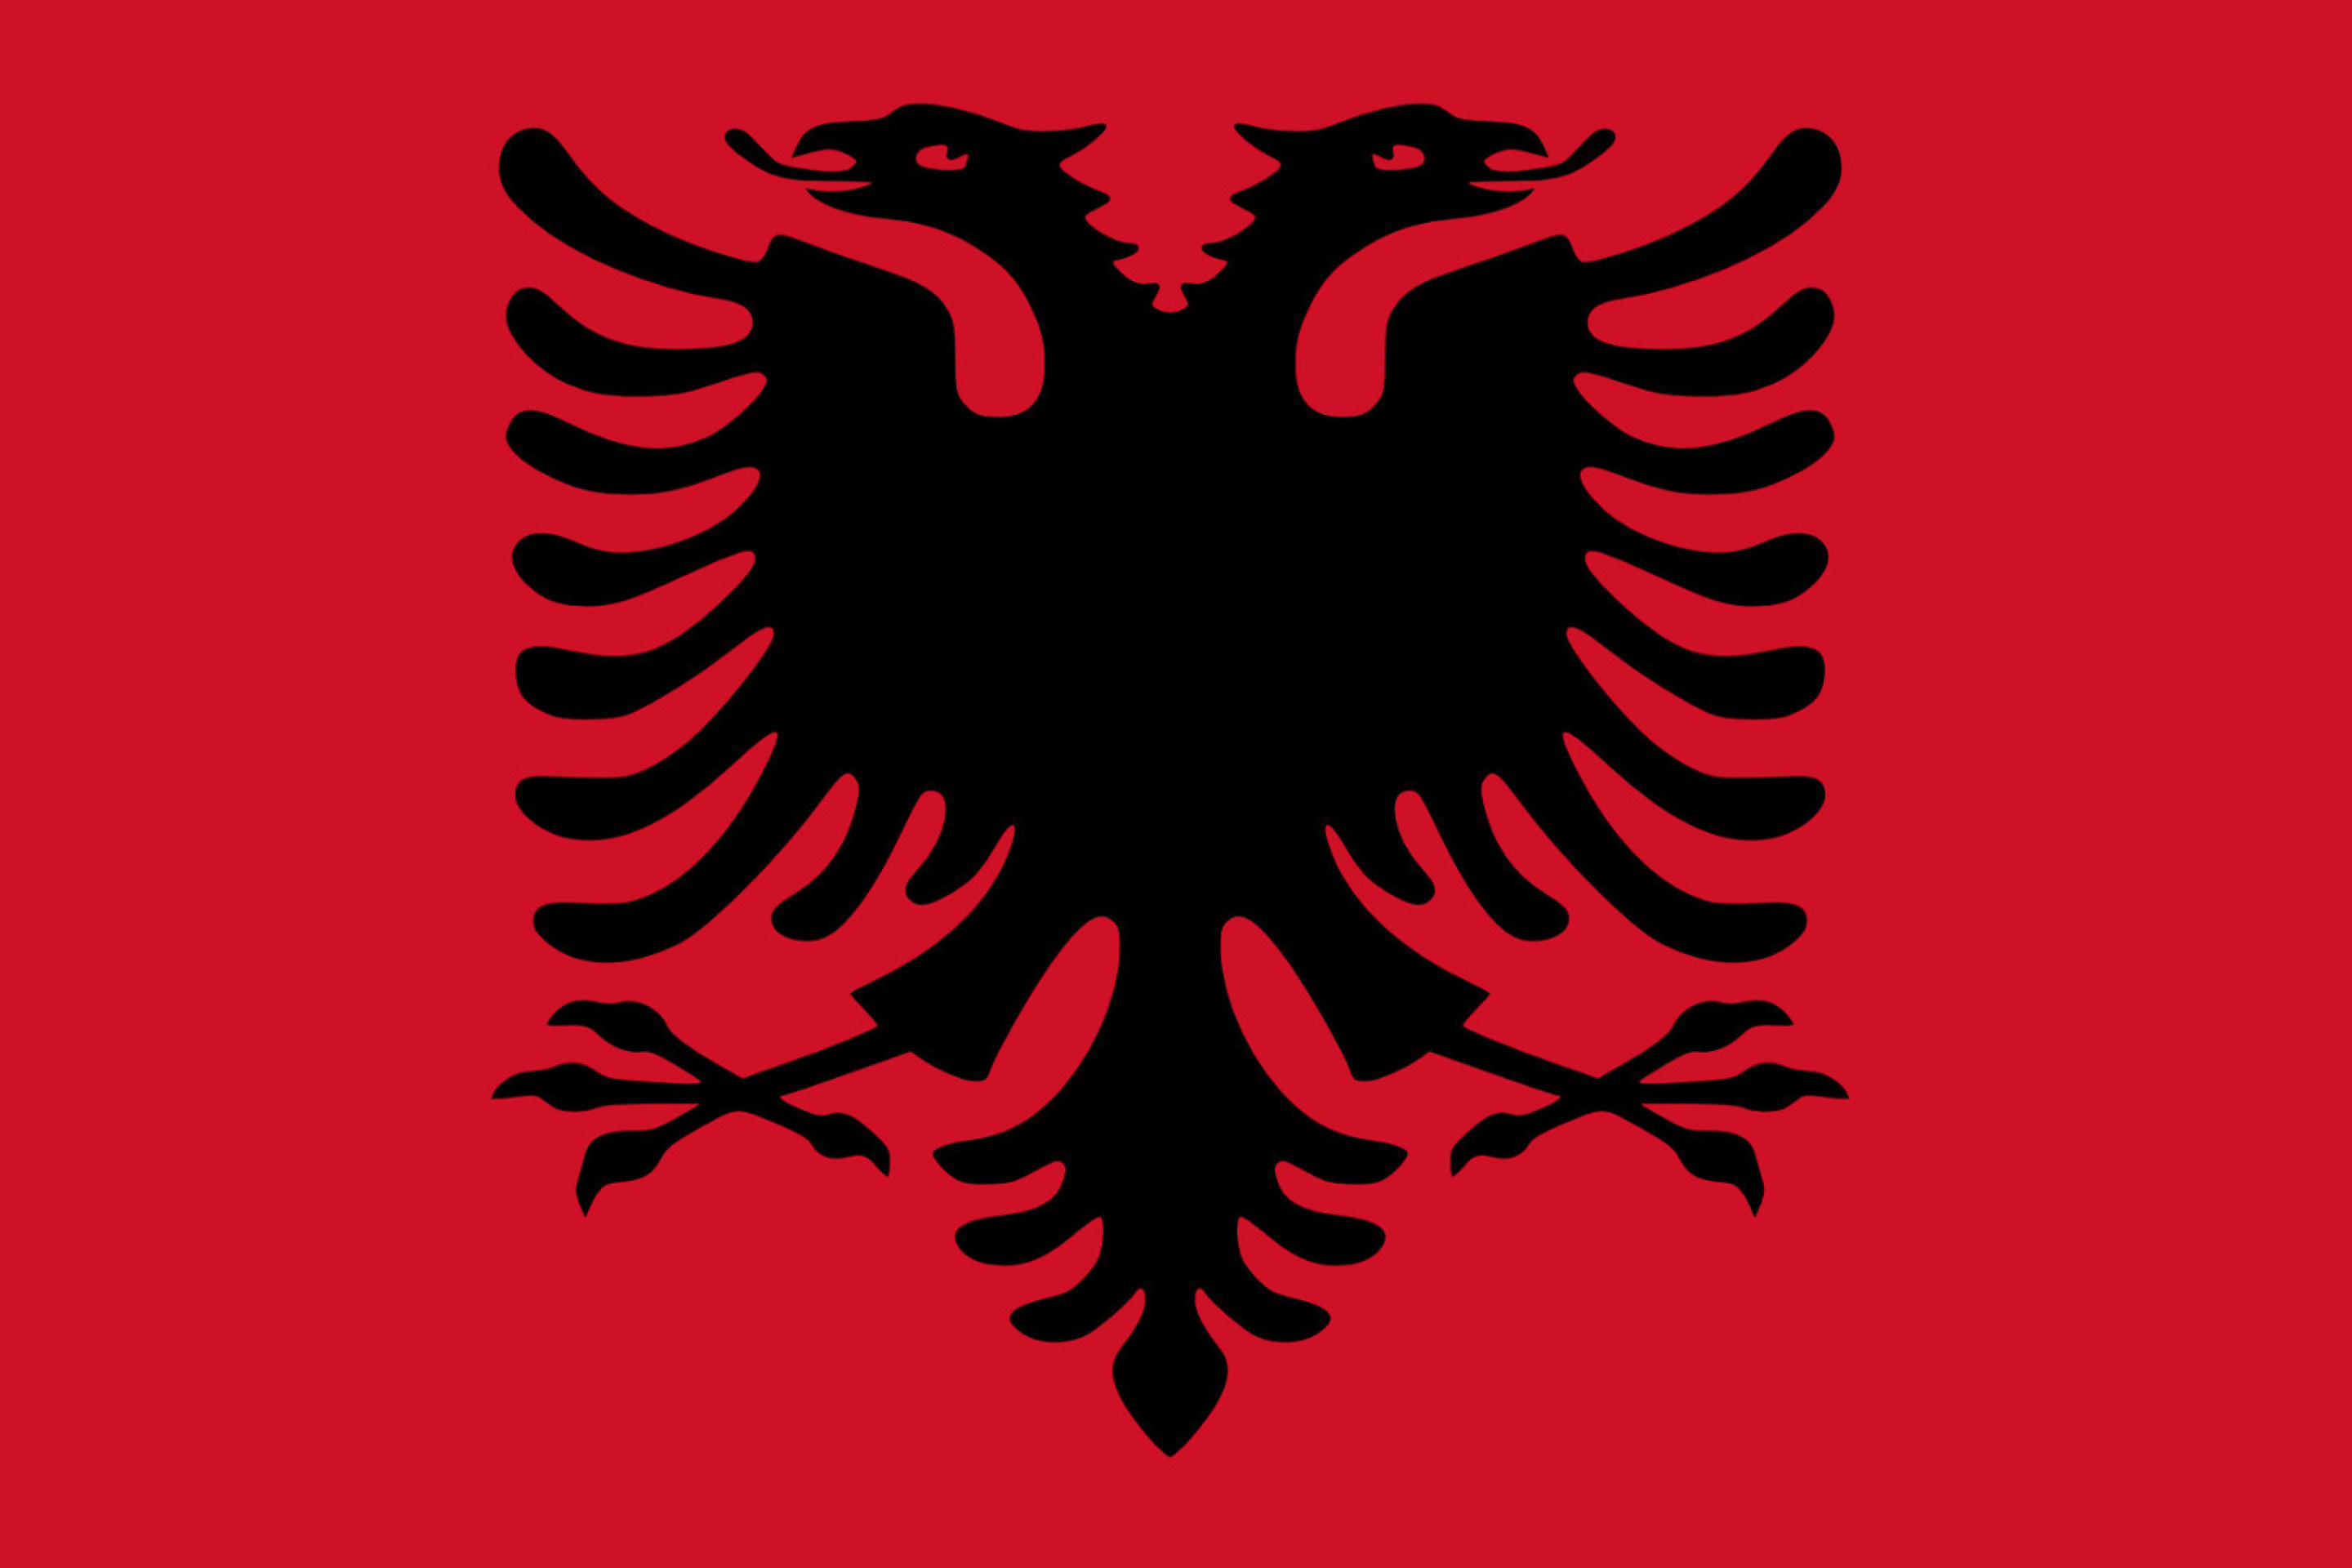 Flag Of Albania Wallpaper For Samsung Galaxy S7